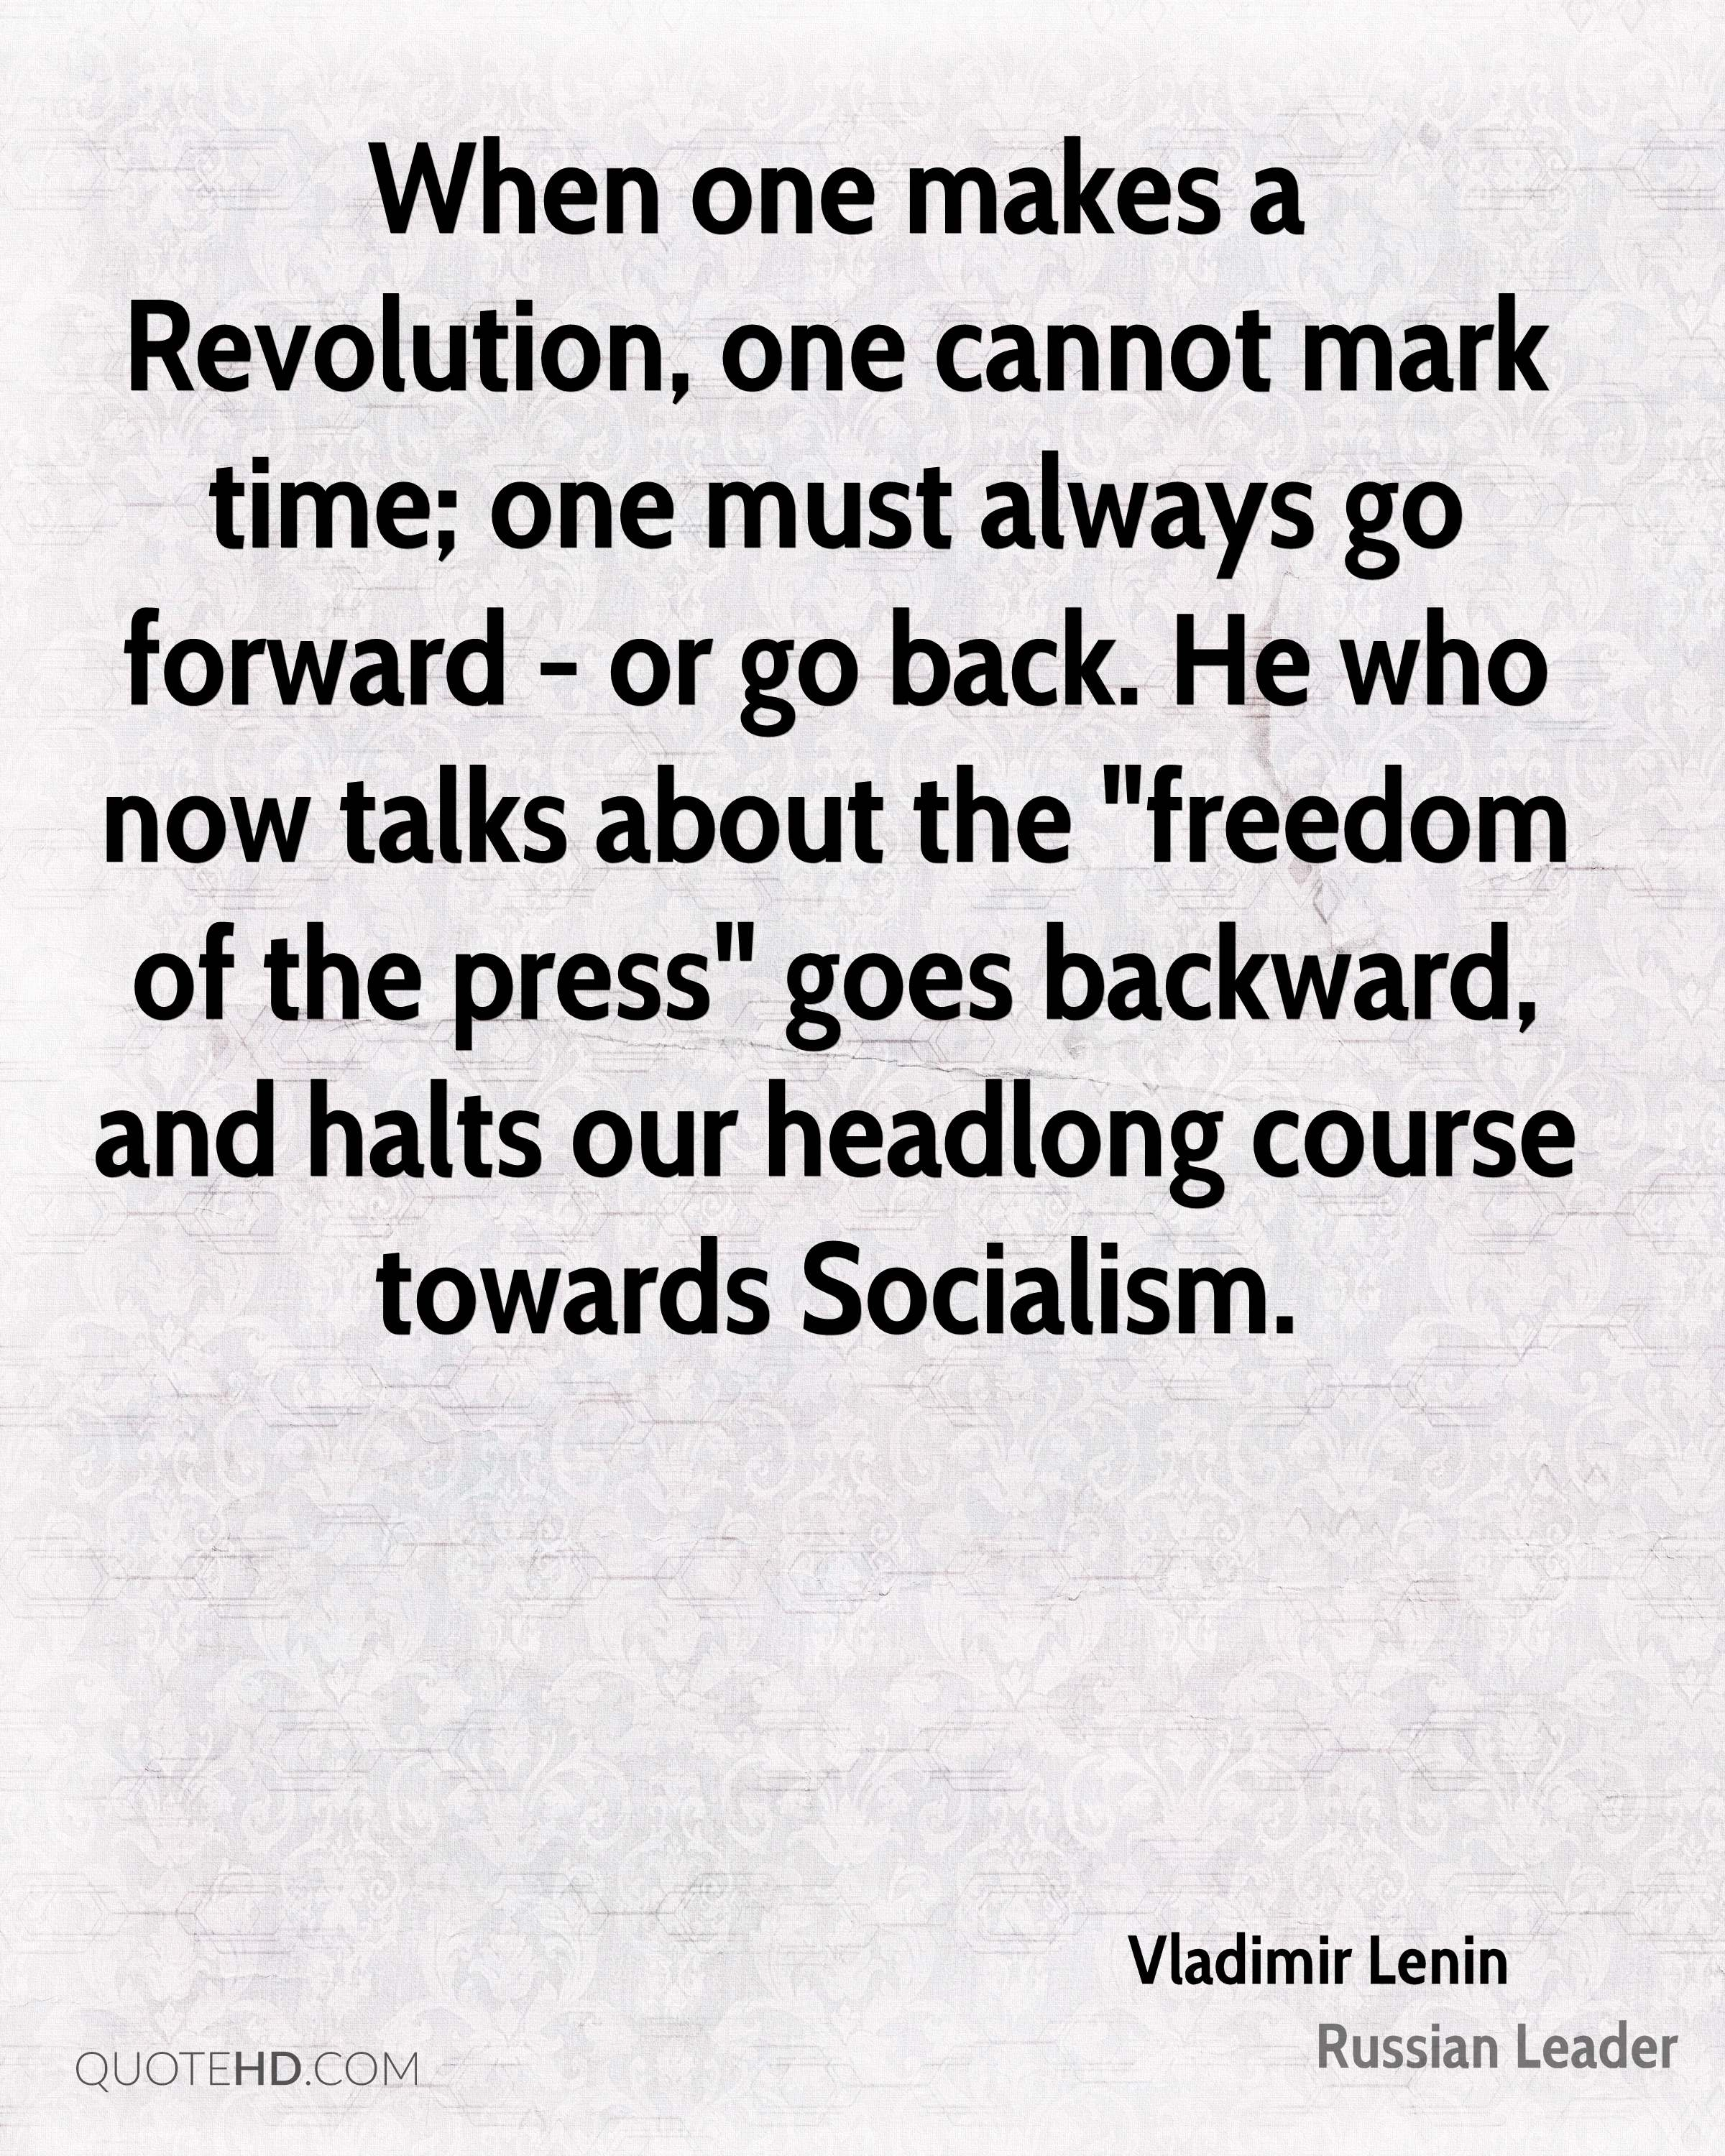 """When one makes a Revolution, one cannot mark time; one must always go forward - or go back. He who now talks about the """"freedom of the press"""" goes backward, and halts our headlong course towards Socialism."""